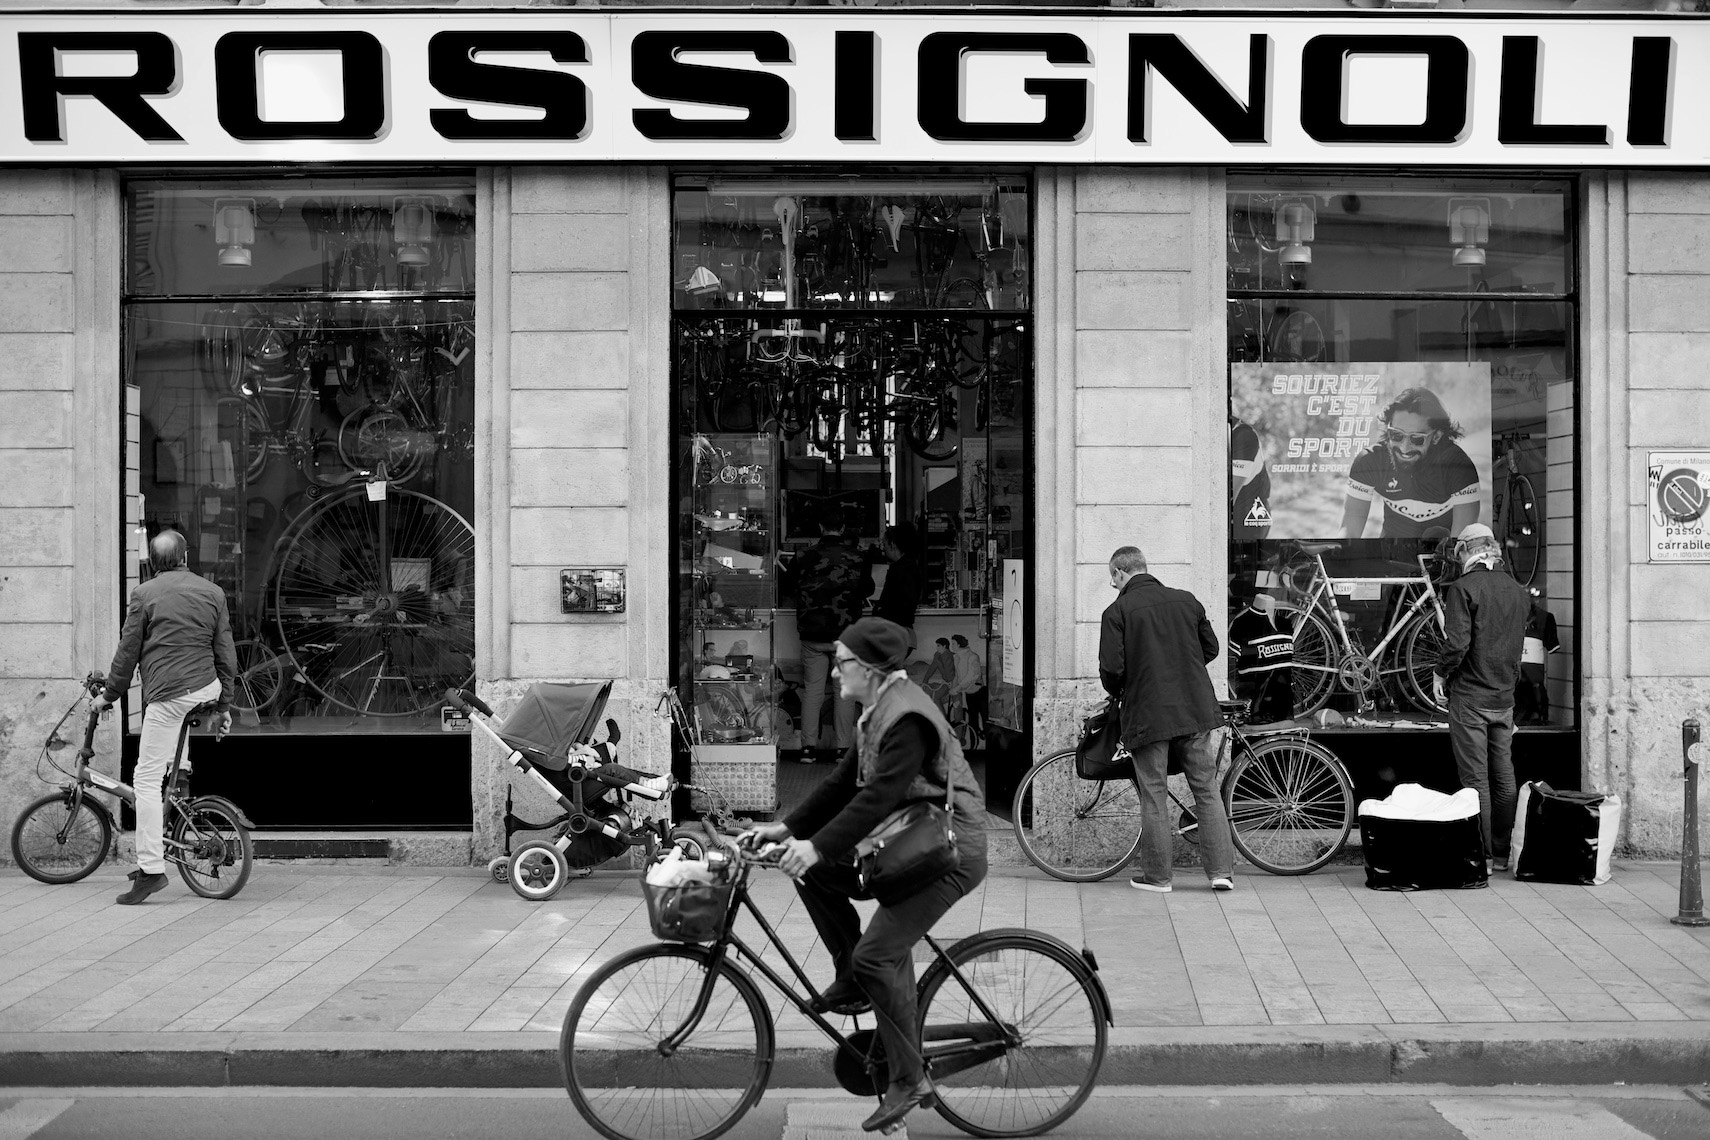 Rossignoli Bike Shop, Milano